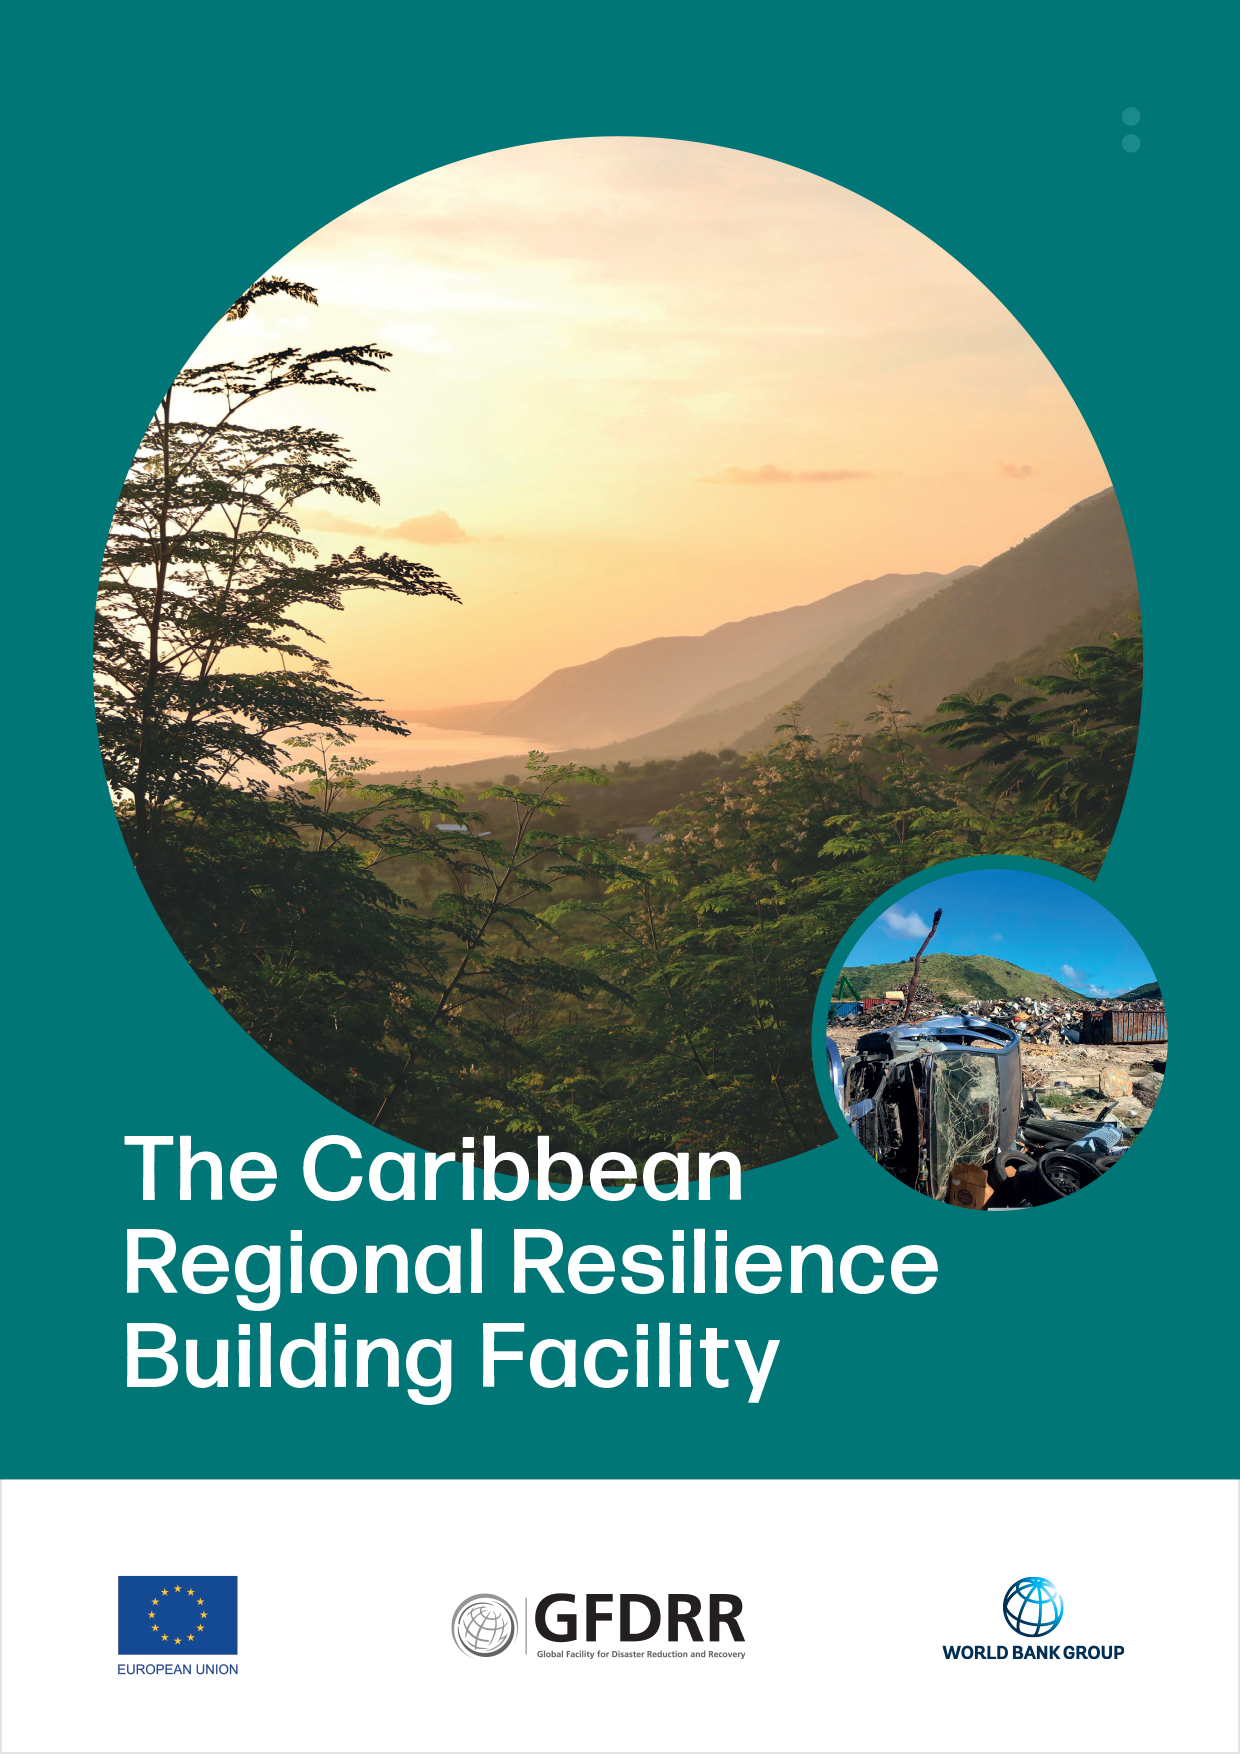 Brochure for the Caribbean Regional Resilience Building Facility